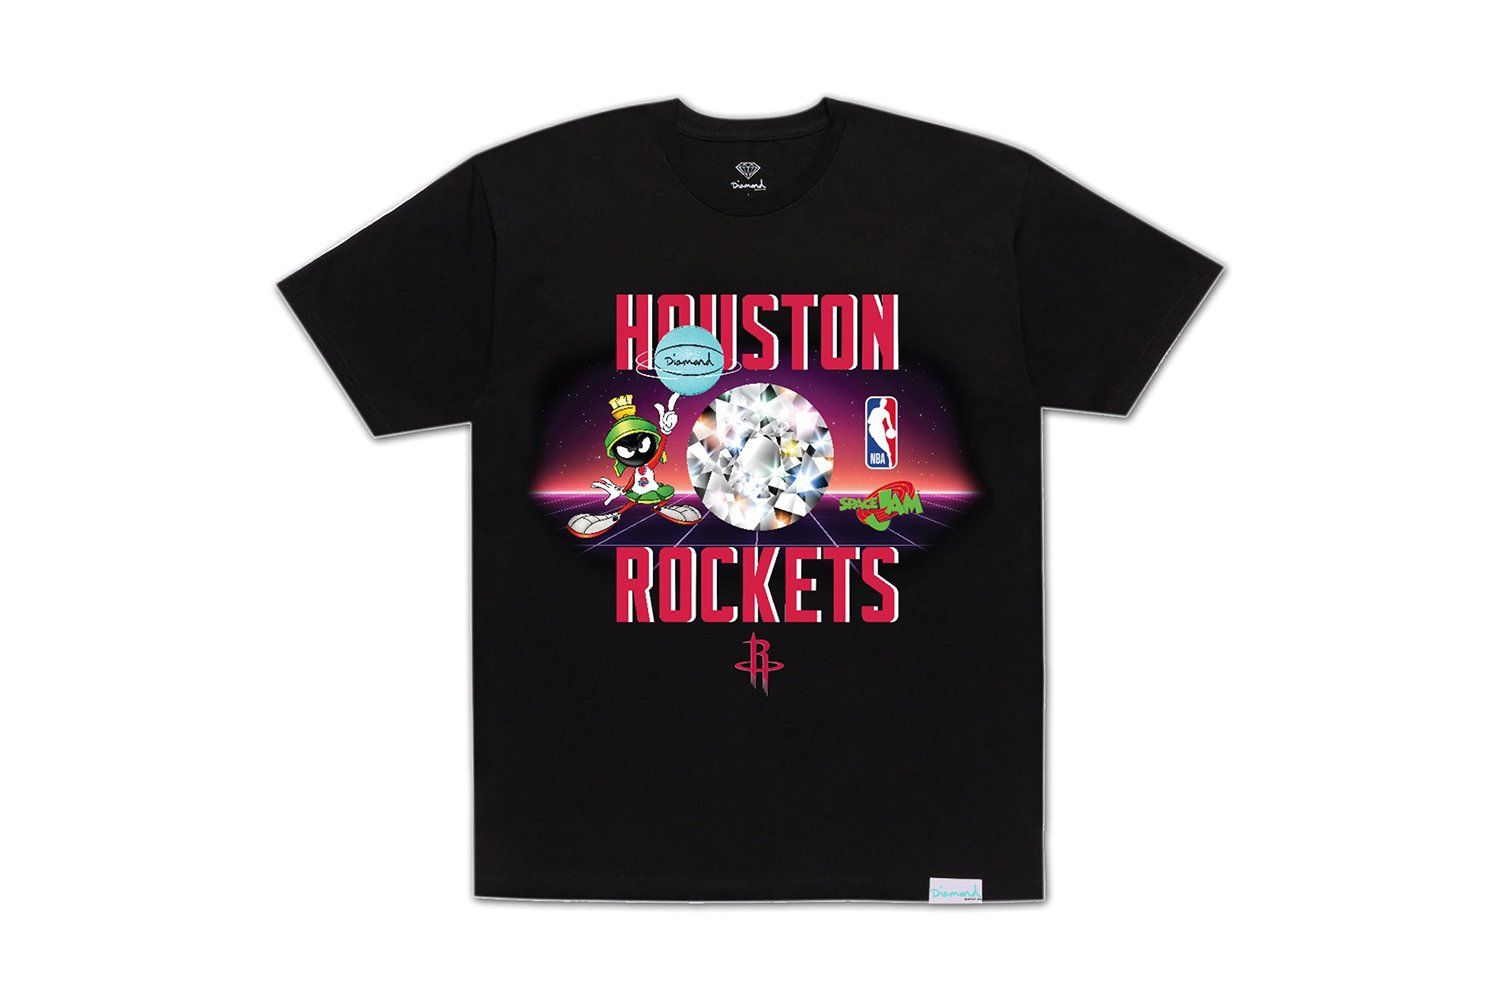 SPACE JAM ROCKETS TEE-A20DMPA206 MENS SOFTGOODS DIAMOND SUPPLY CO.